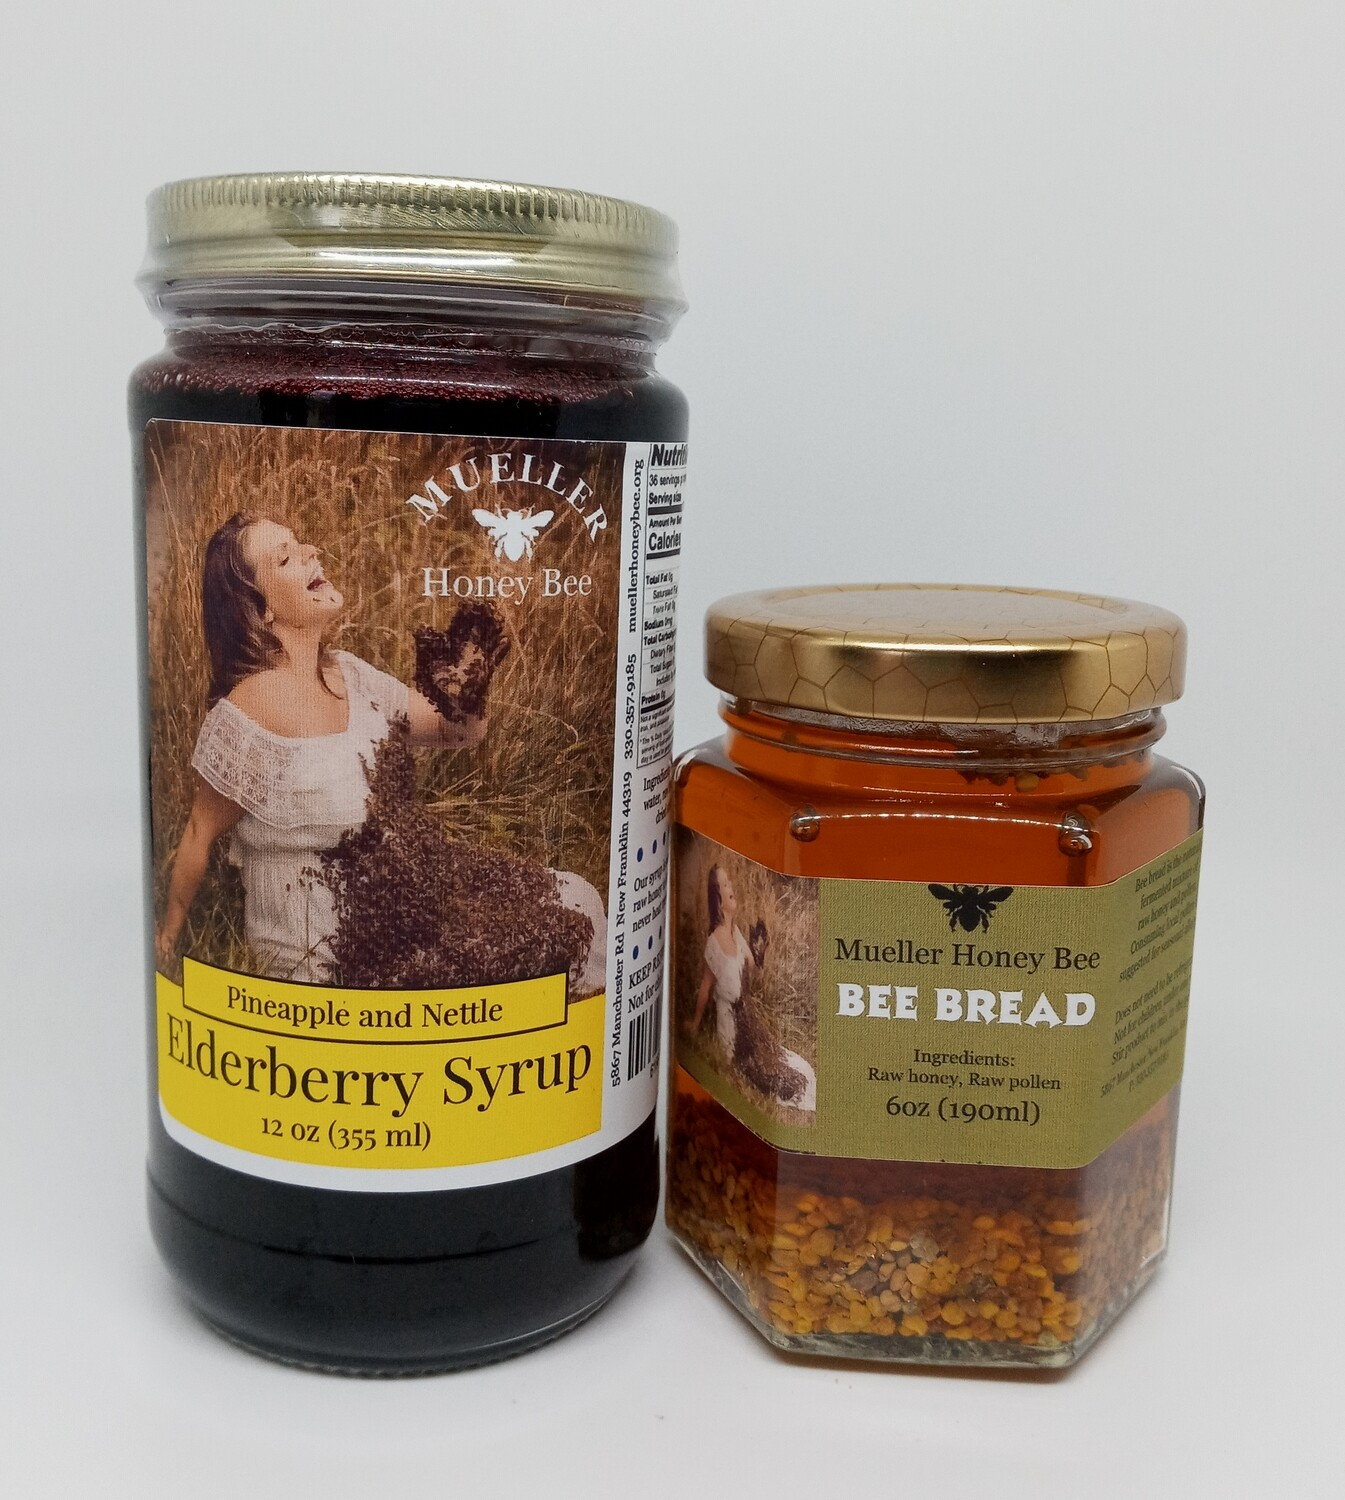 Daily Allergy Pack - 6 oz Bee Bread and 12 oz Pineapple Nettle Syrup